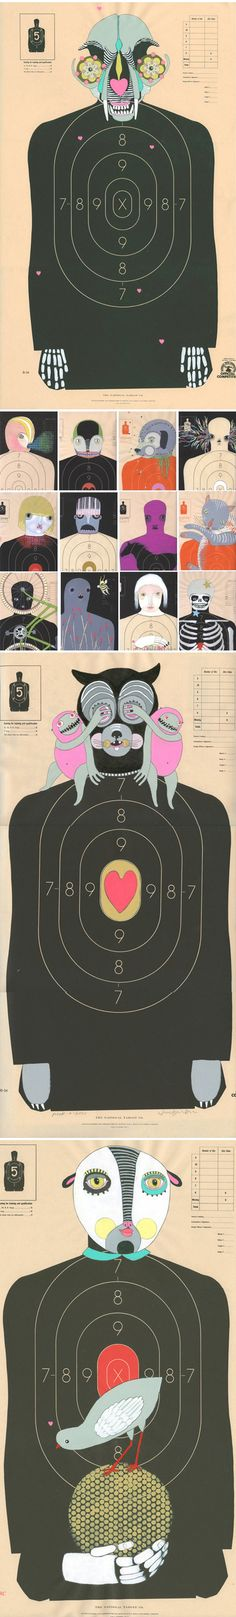 Jennifer Davis, Hand Painted Paper Shooting Targets